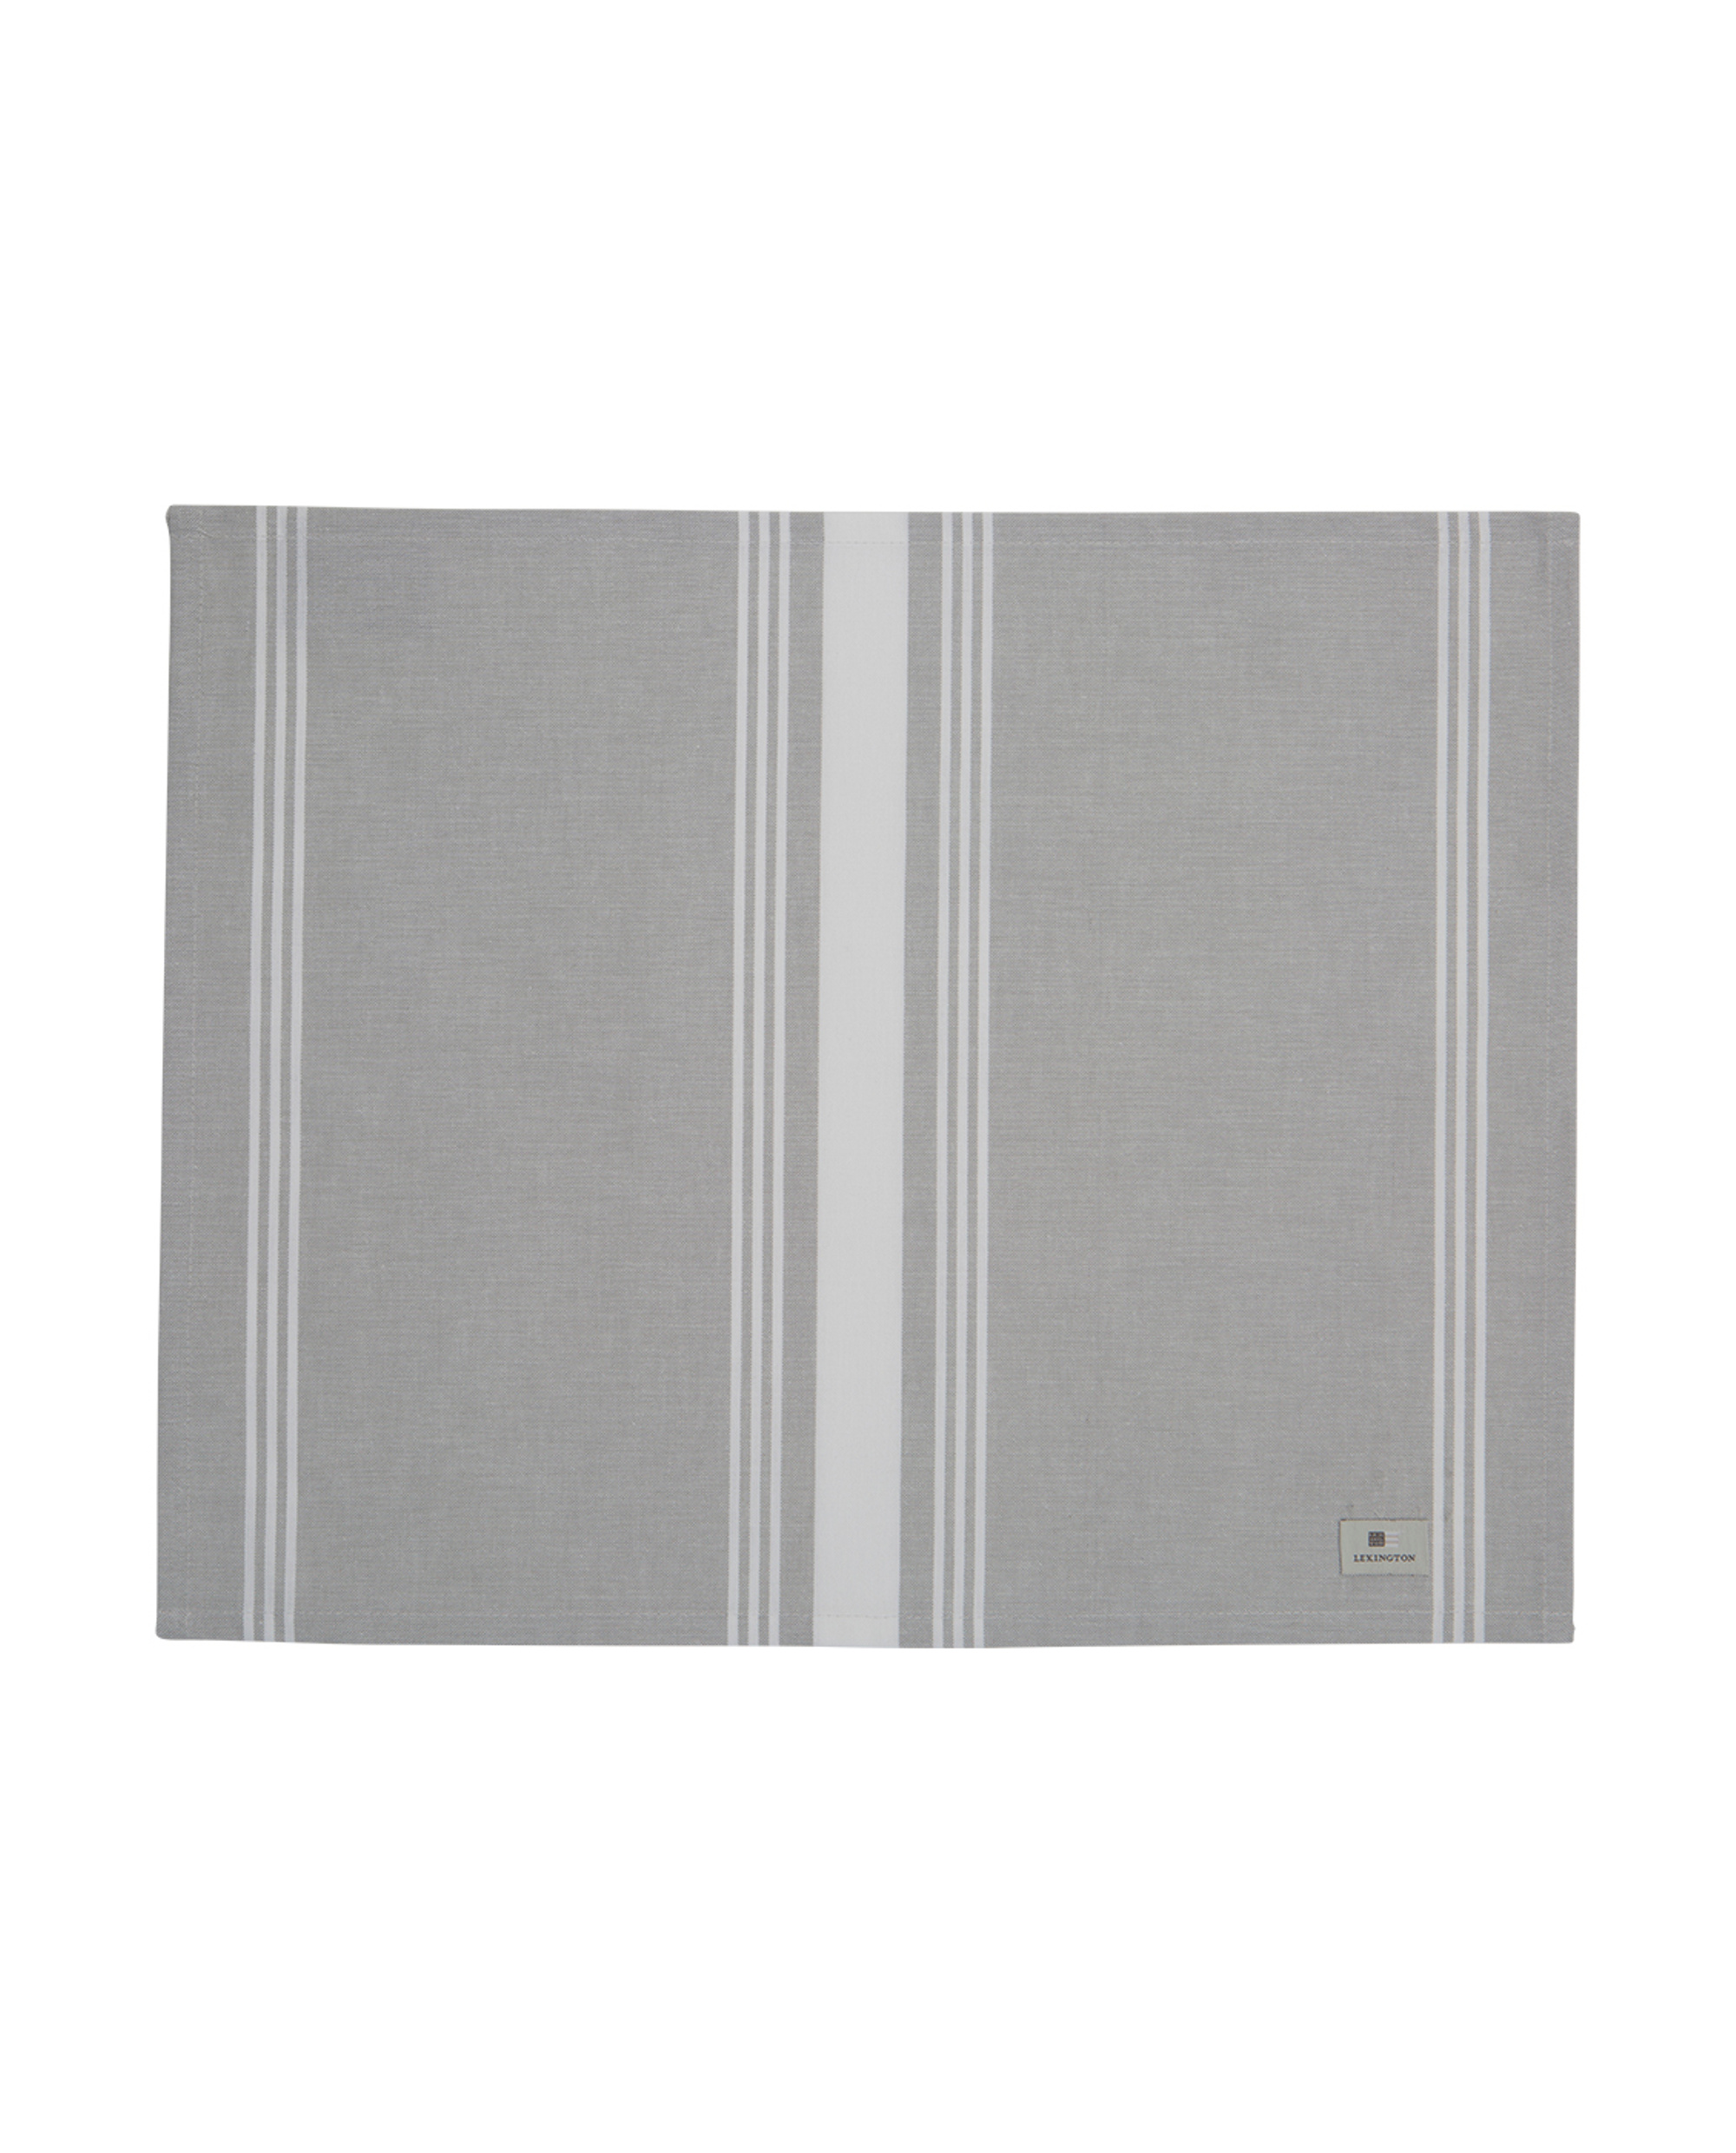 Hotel Striped Placemat, Gray/White